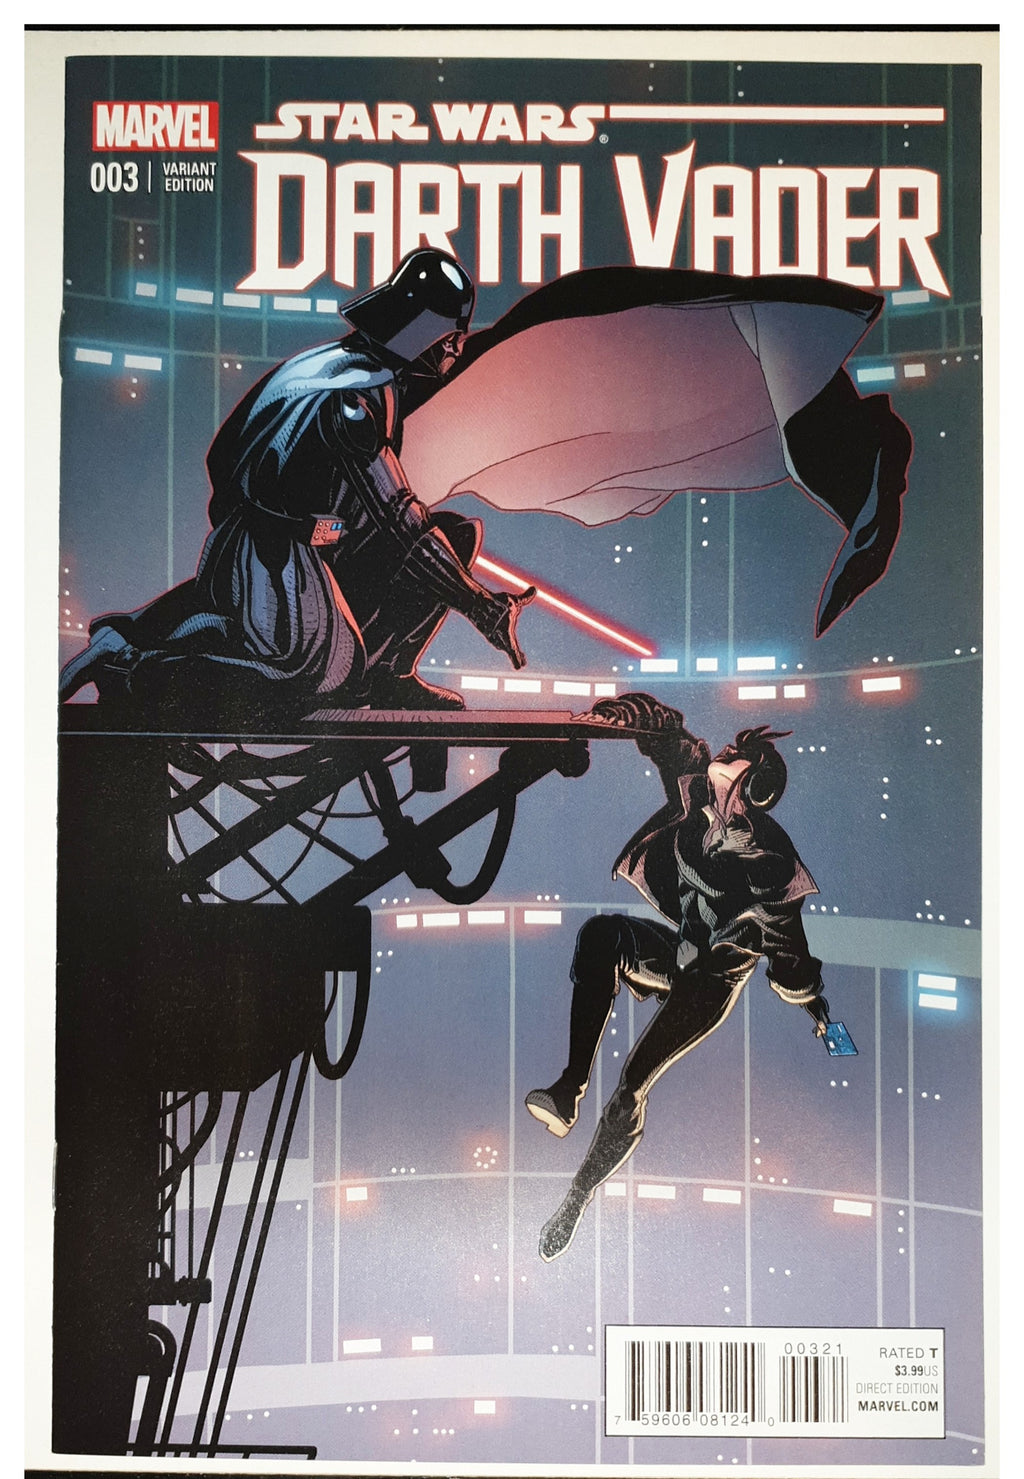 Star Wars Darth Vader #3 1:25 Larroca Variant 1st Appearance of Doctor Aphra